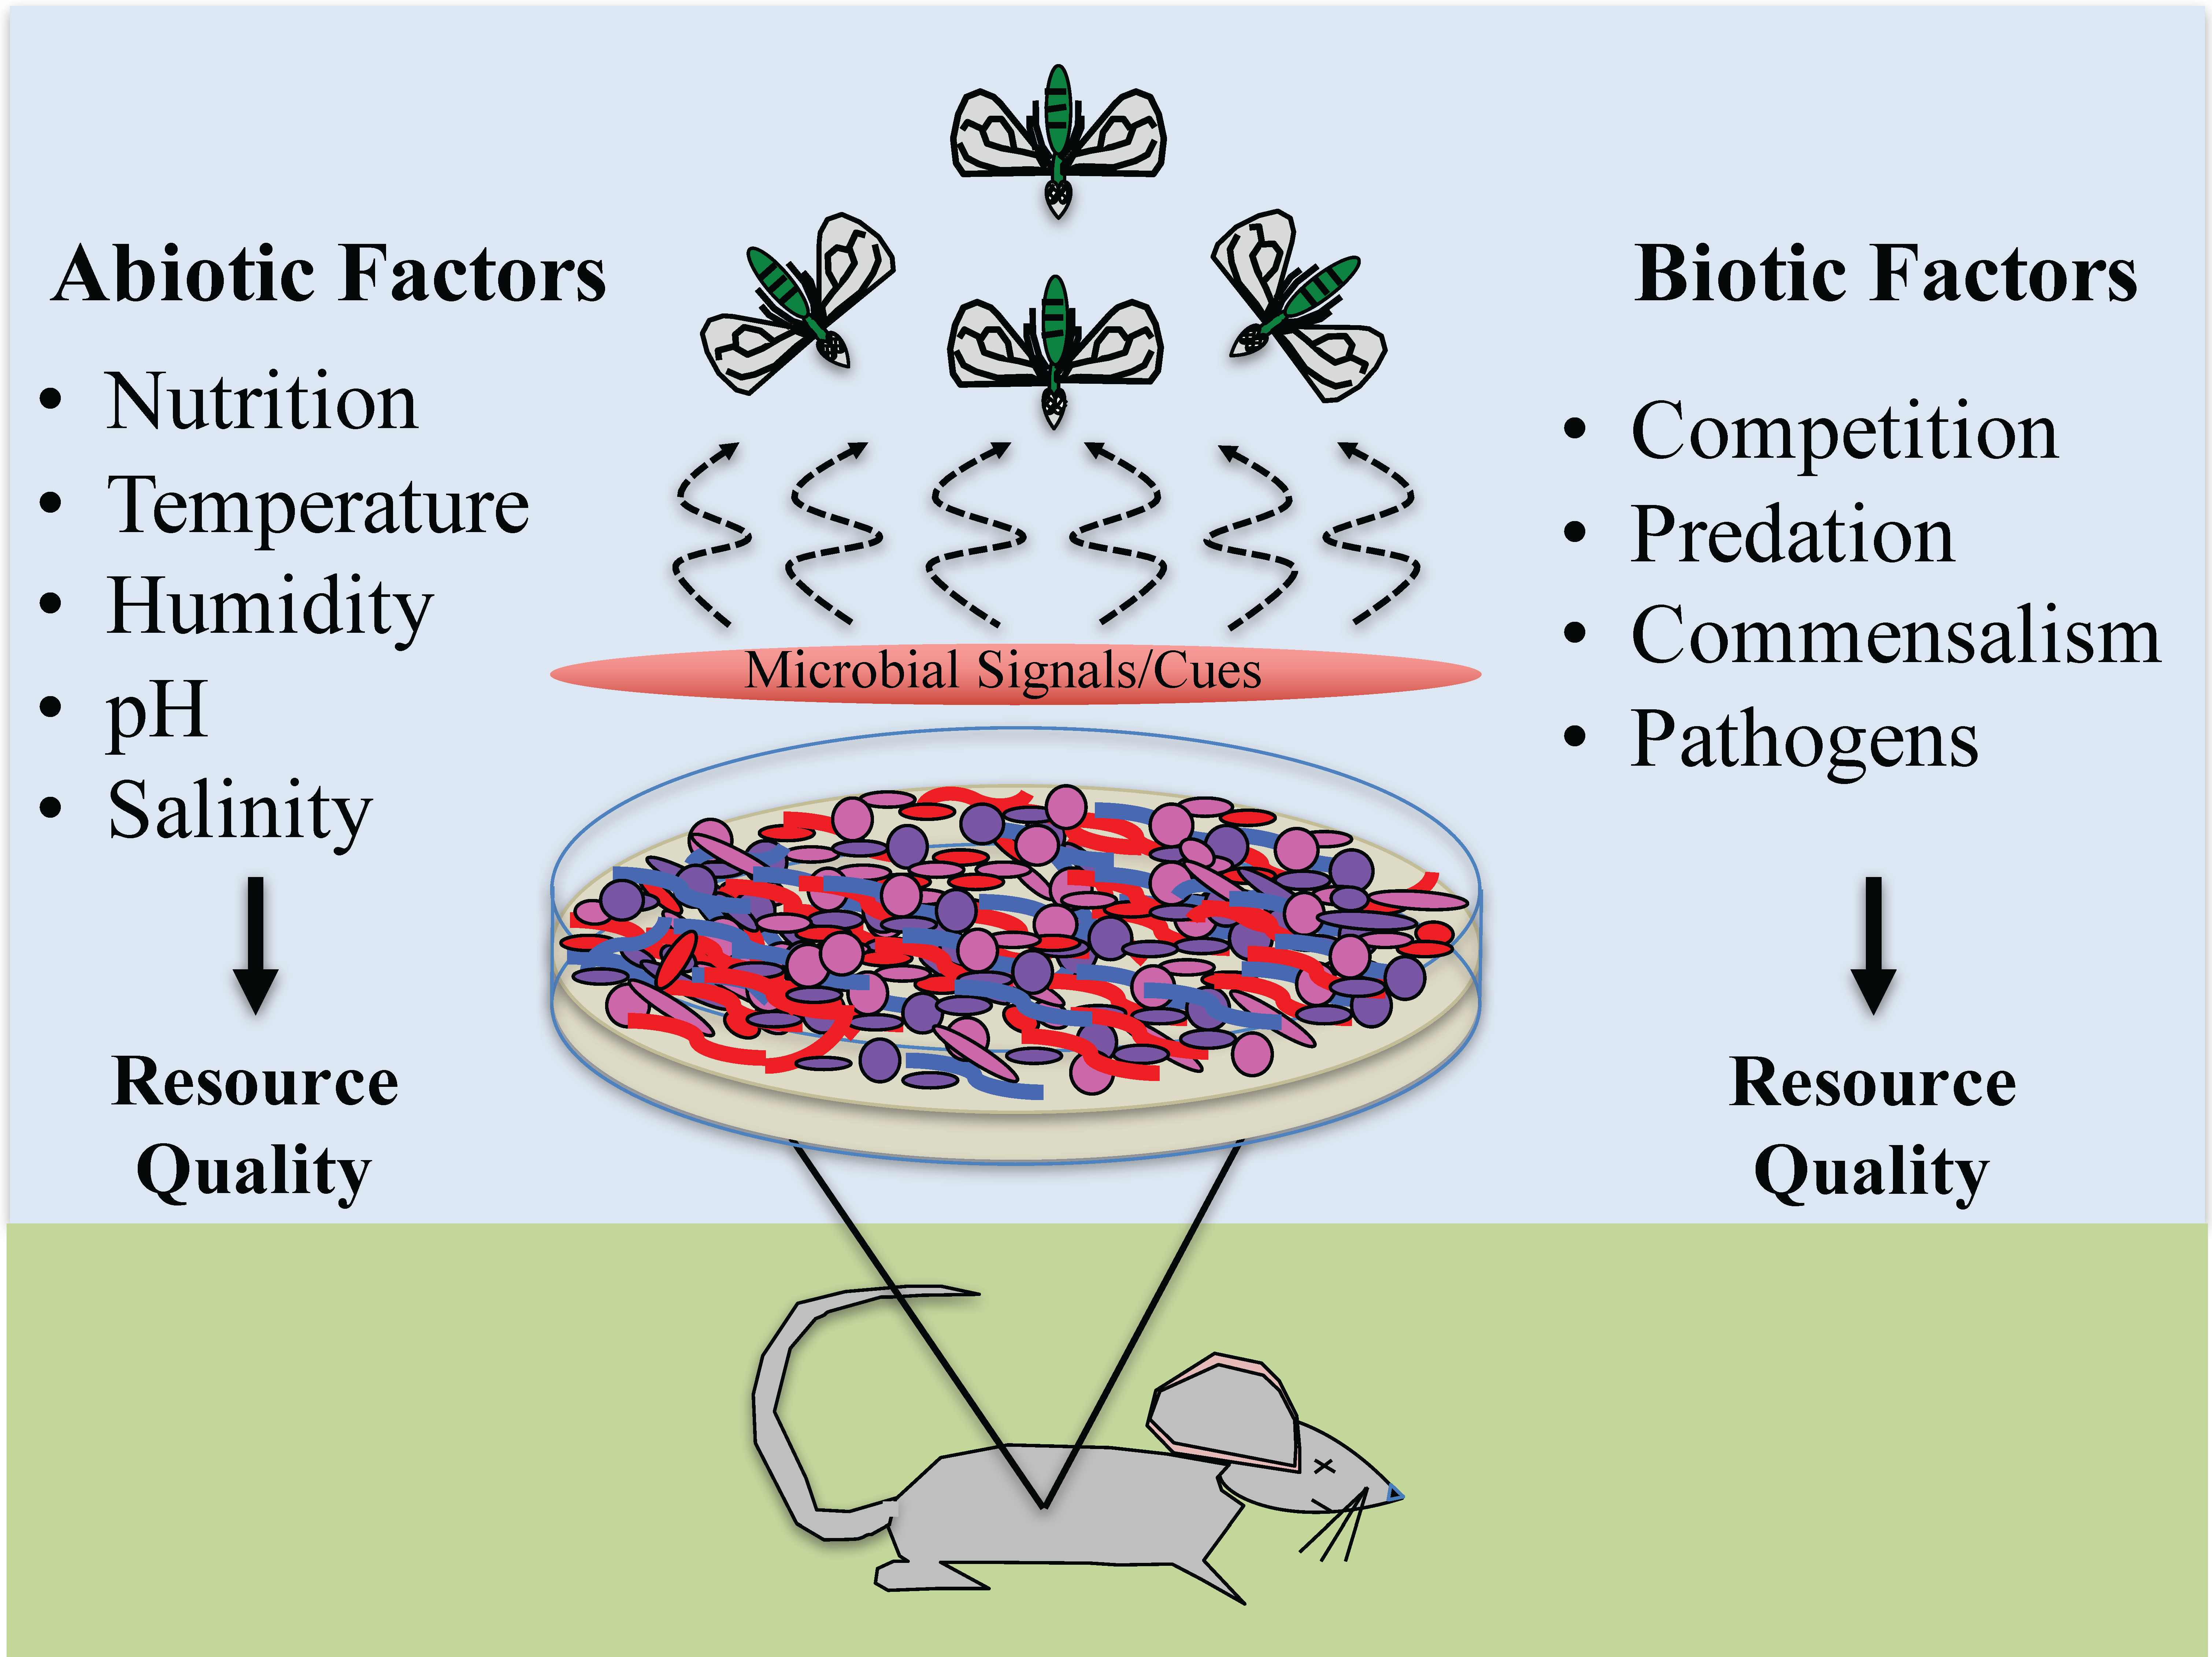 Insects Free Full Text Abiotic And Biotic Factors Regulating Inter Kingdom Engagement Between Insects And Microbe Activity On Vertebrate Remains Html